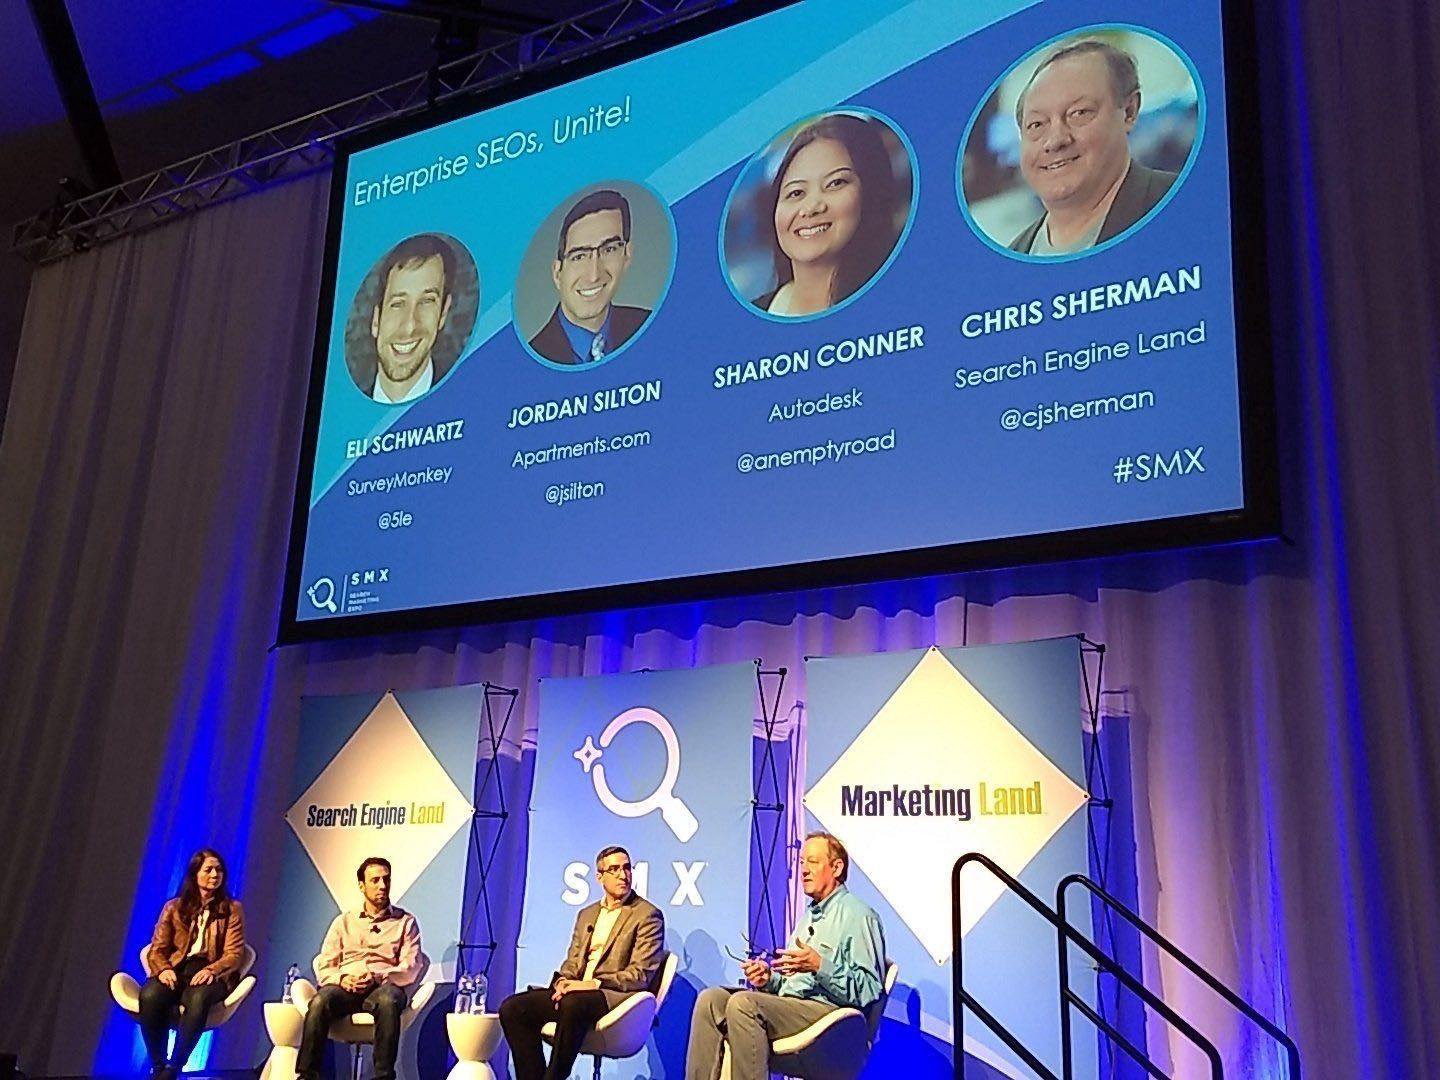 Enterprise SEOs Unite - Panel at SMX West 2019